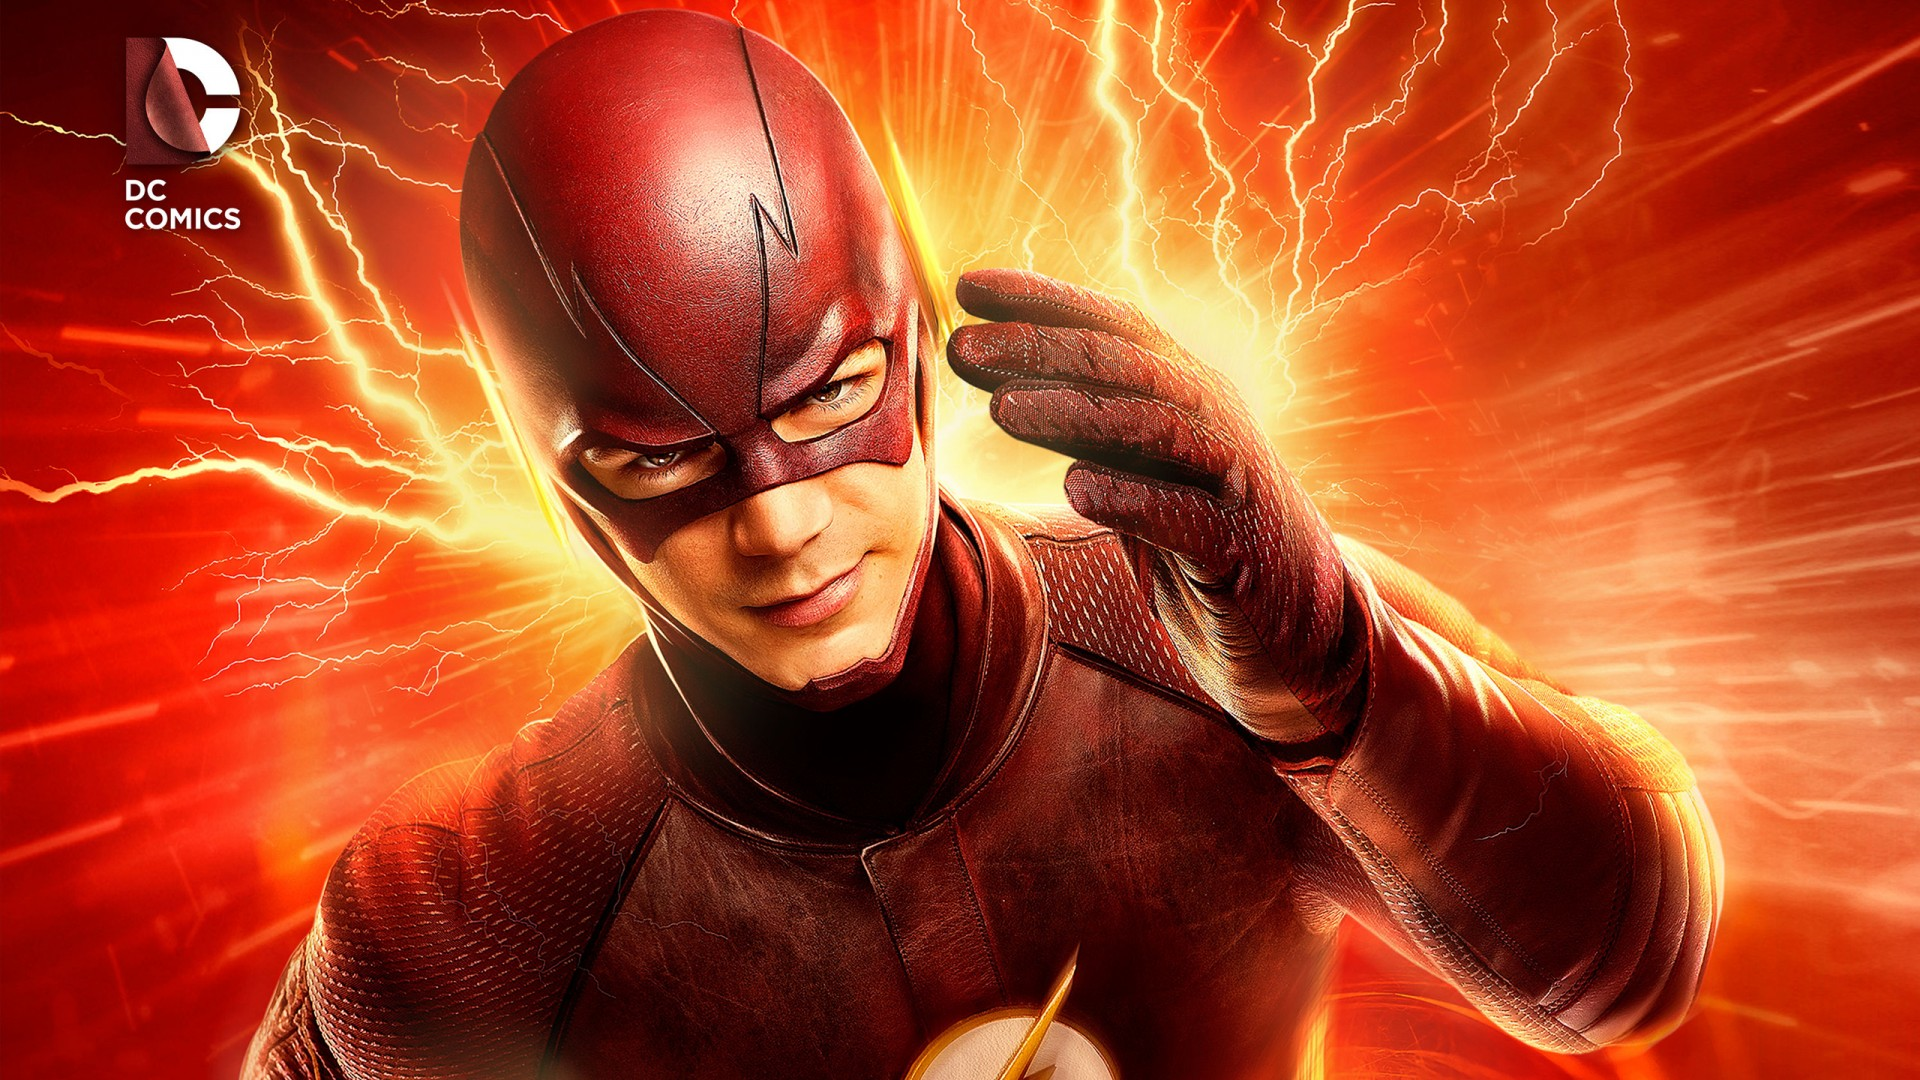 Iphone X Wallpaper Live Android Dc Comics The Flash Wallpapers Hd Wallpapers Id 18467